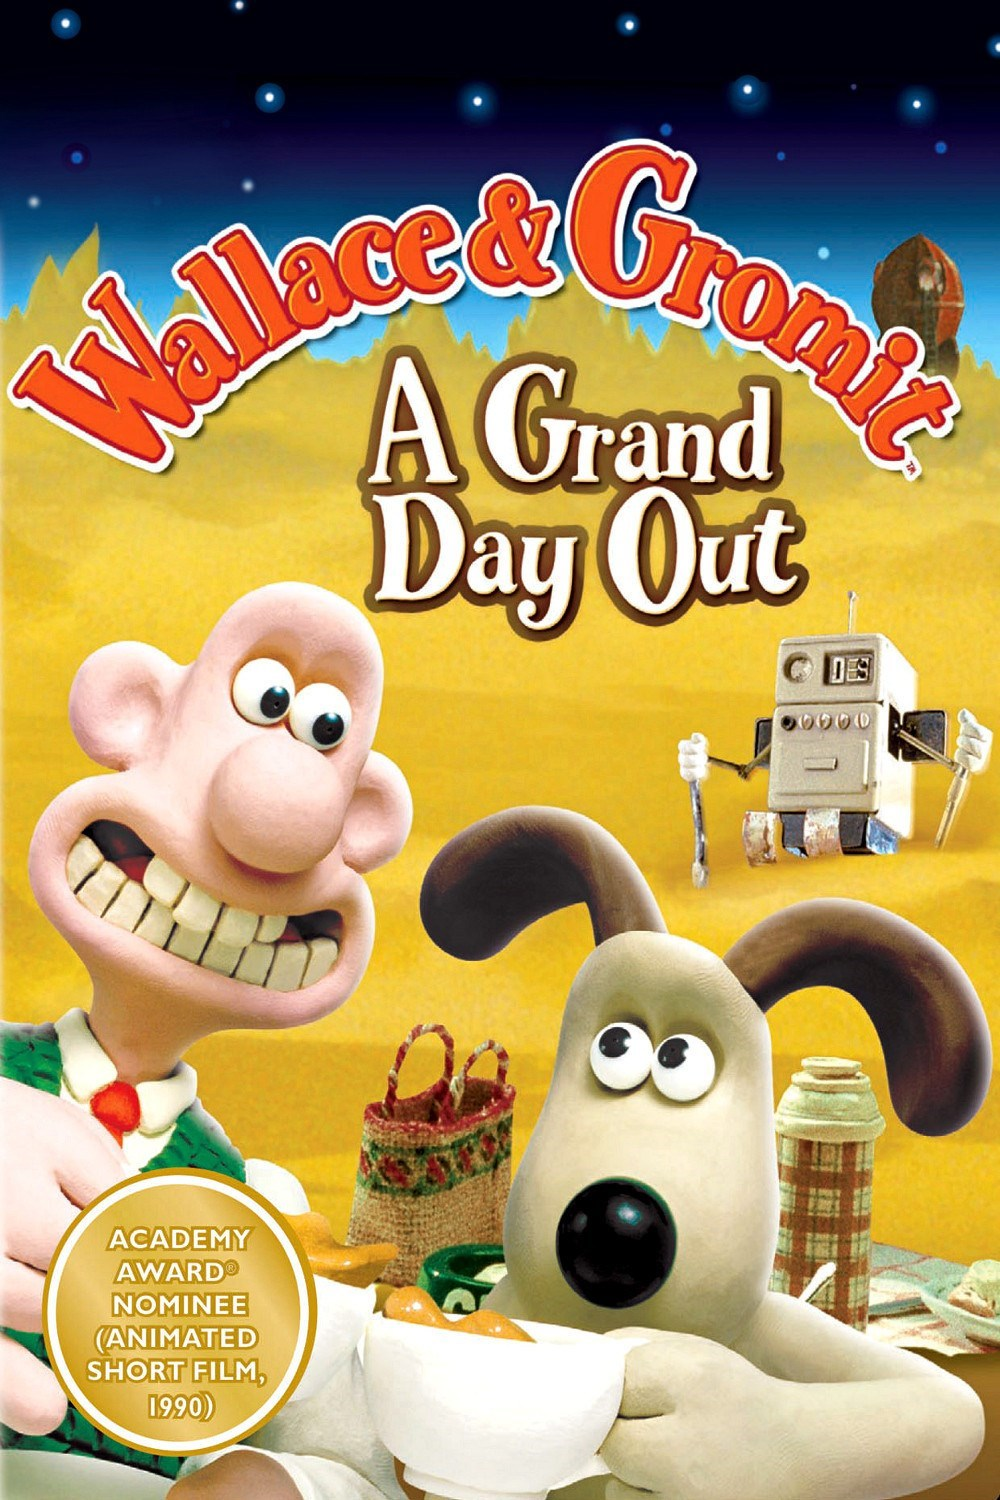 GROMIT TÉLÉCHARGER GRANDE ET EXCURSION UNE WALLACE